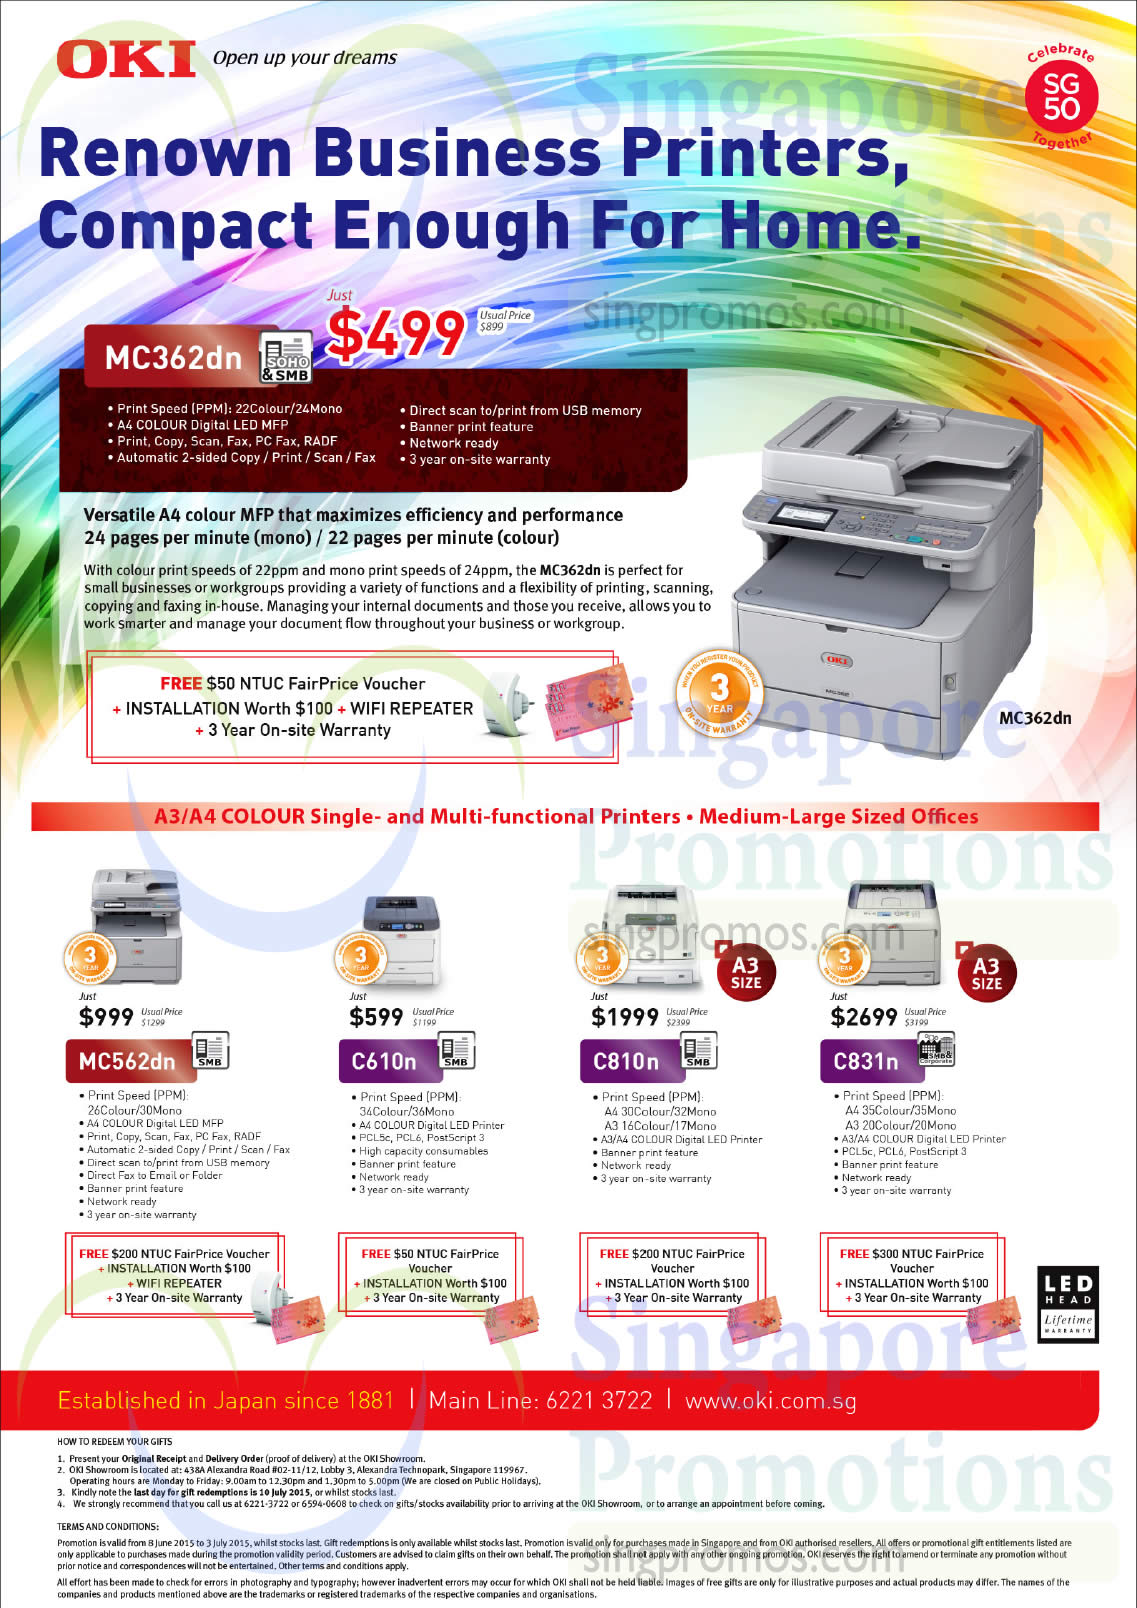 A3, A4 Colour Single, Multi Functional Printers